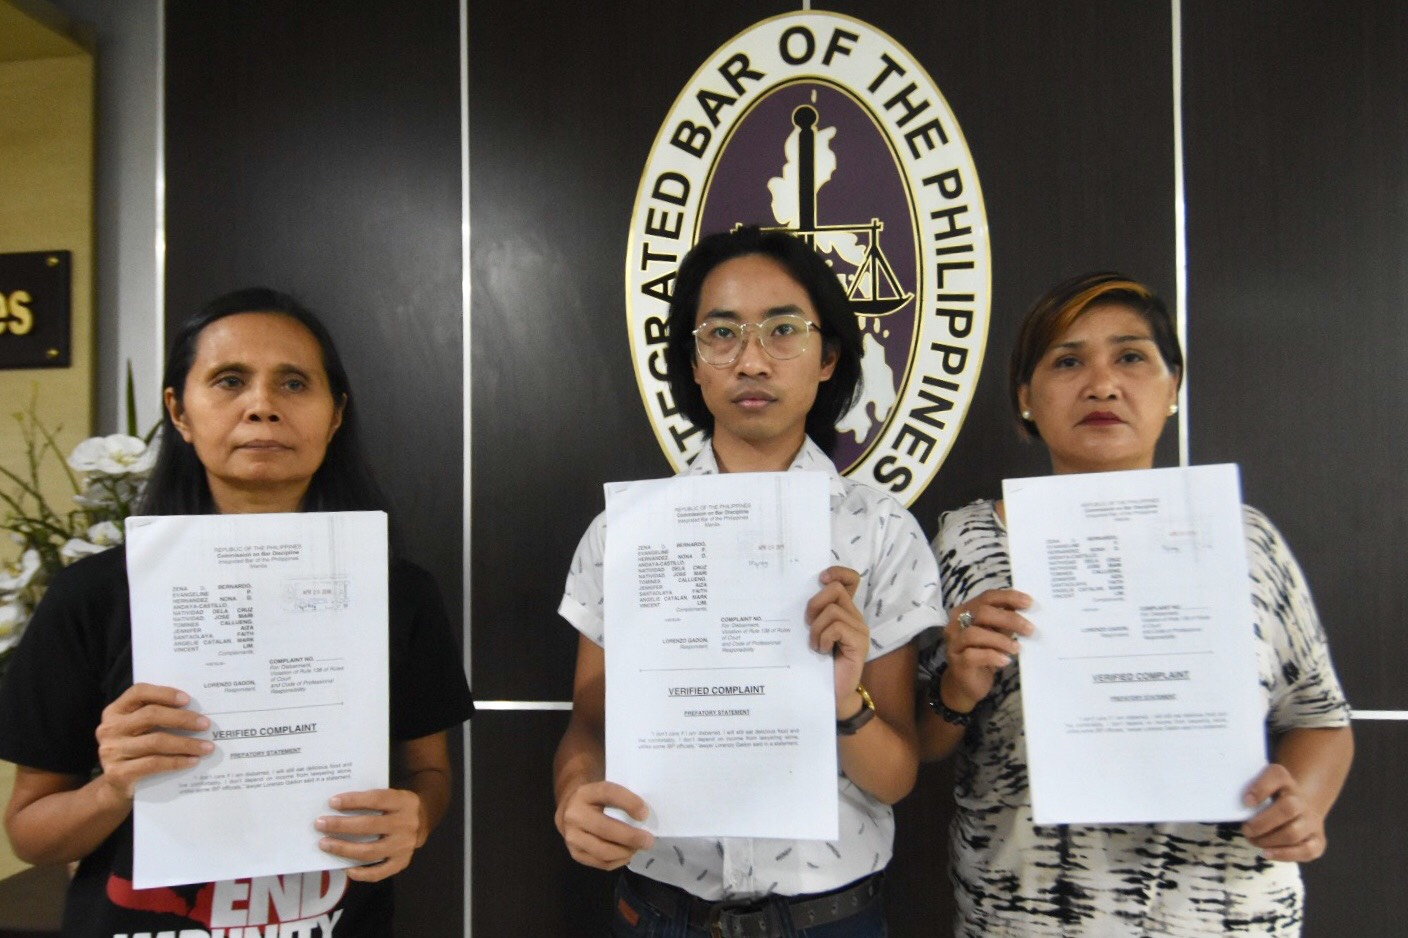 ANOTHER DISBARMENT COMPLAINT. (L-R) Nona Andaya-Castillo, Jose Mari Callueng, and Natividad dela Cruz Natividad hold up their group's disbarment complaint against Larry Gadon filed before the Integrated Bar of the Philippines. Photo by Angie de Silva/Rappler